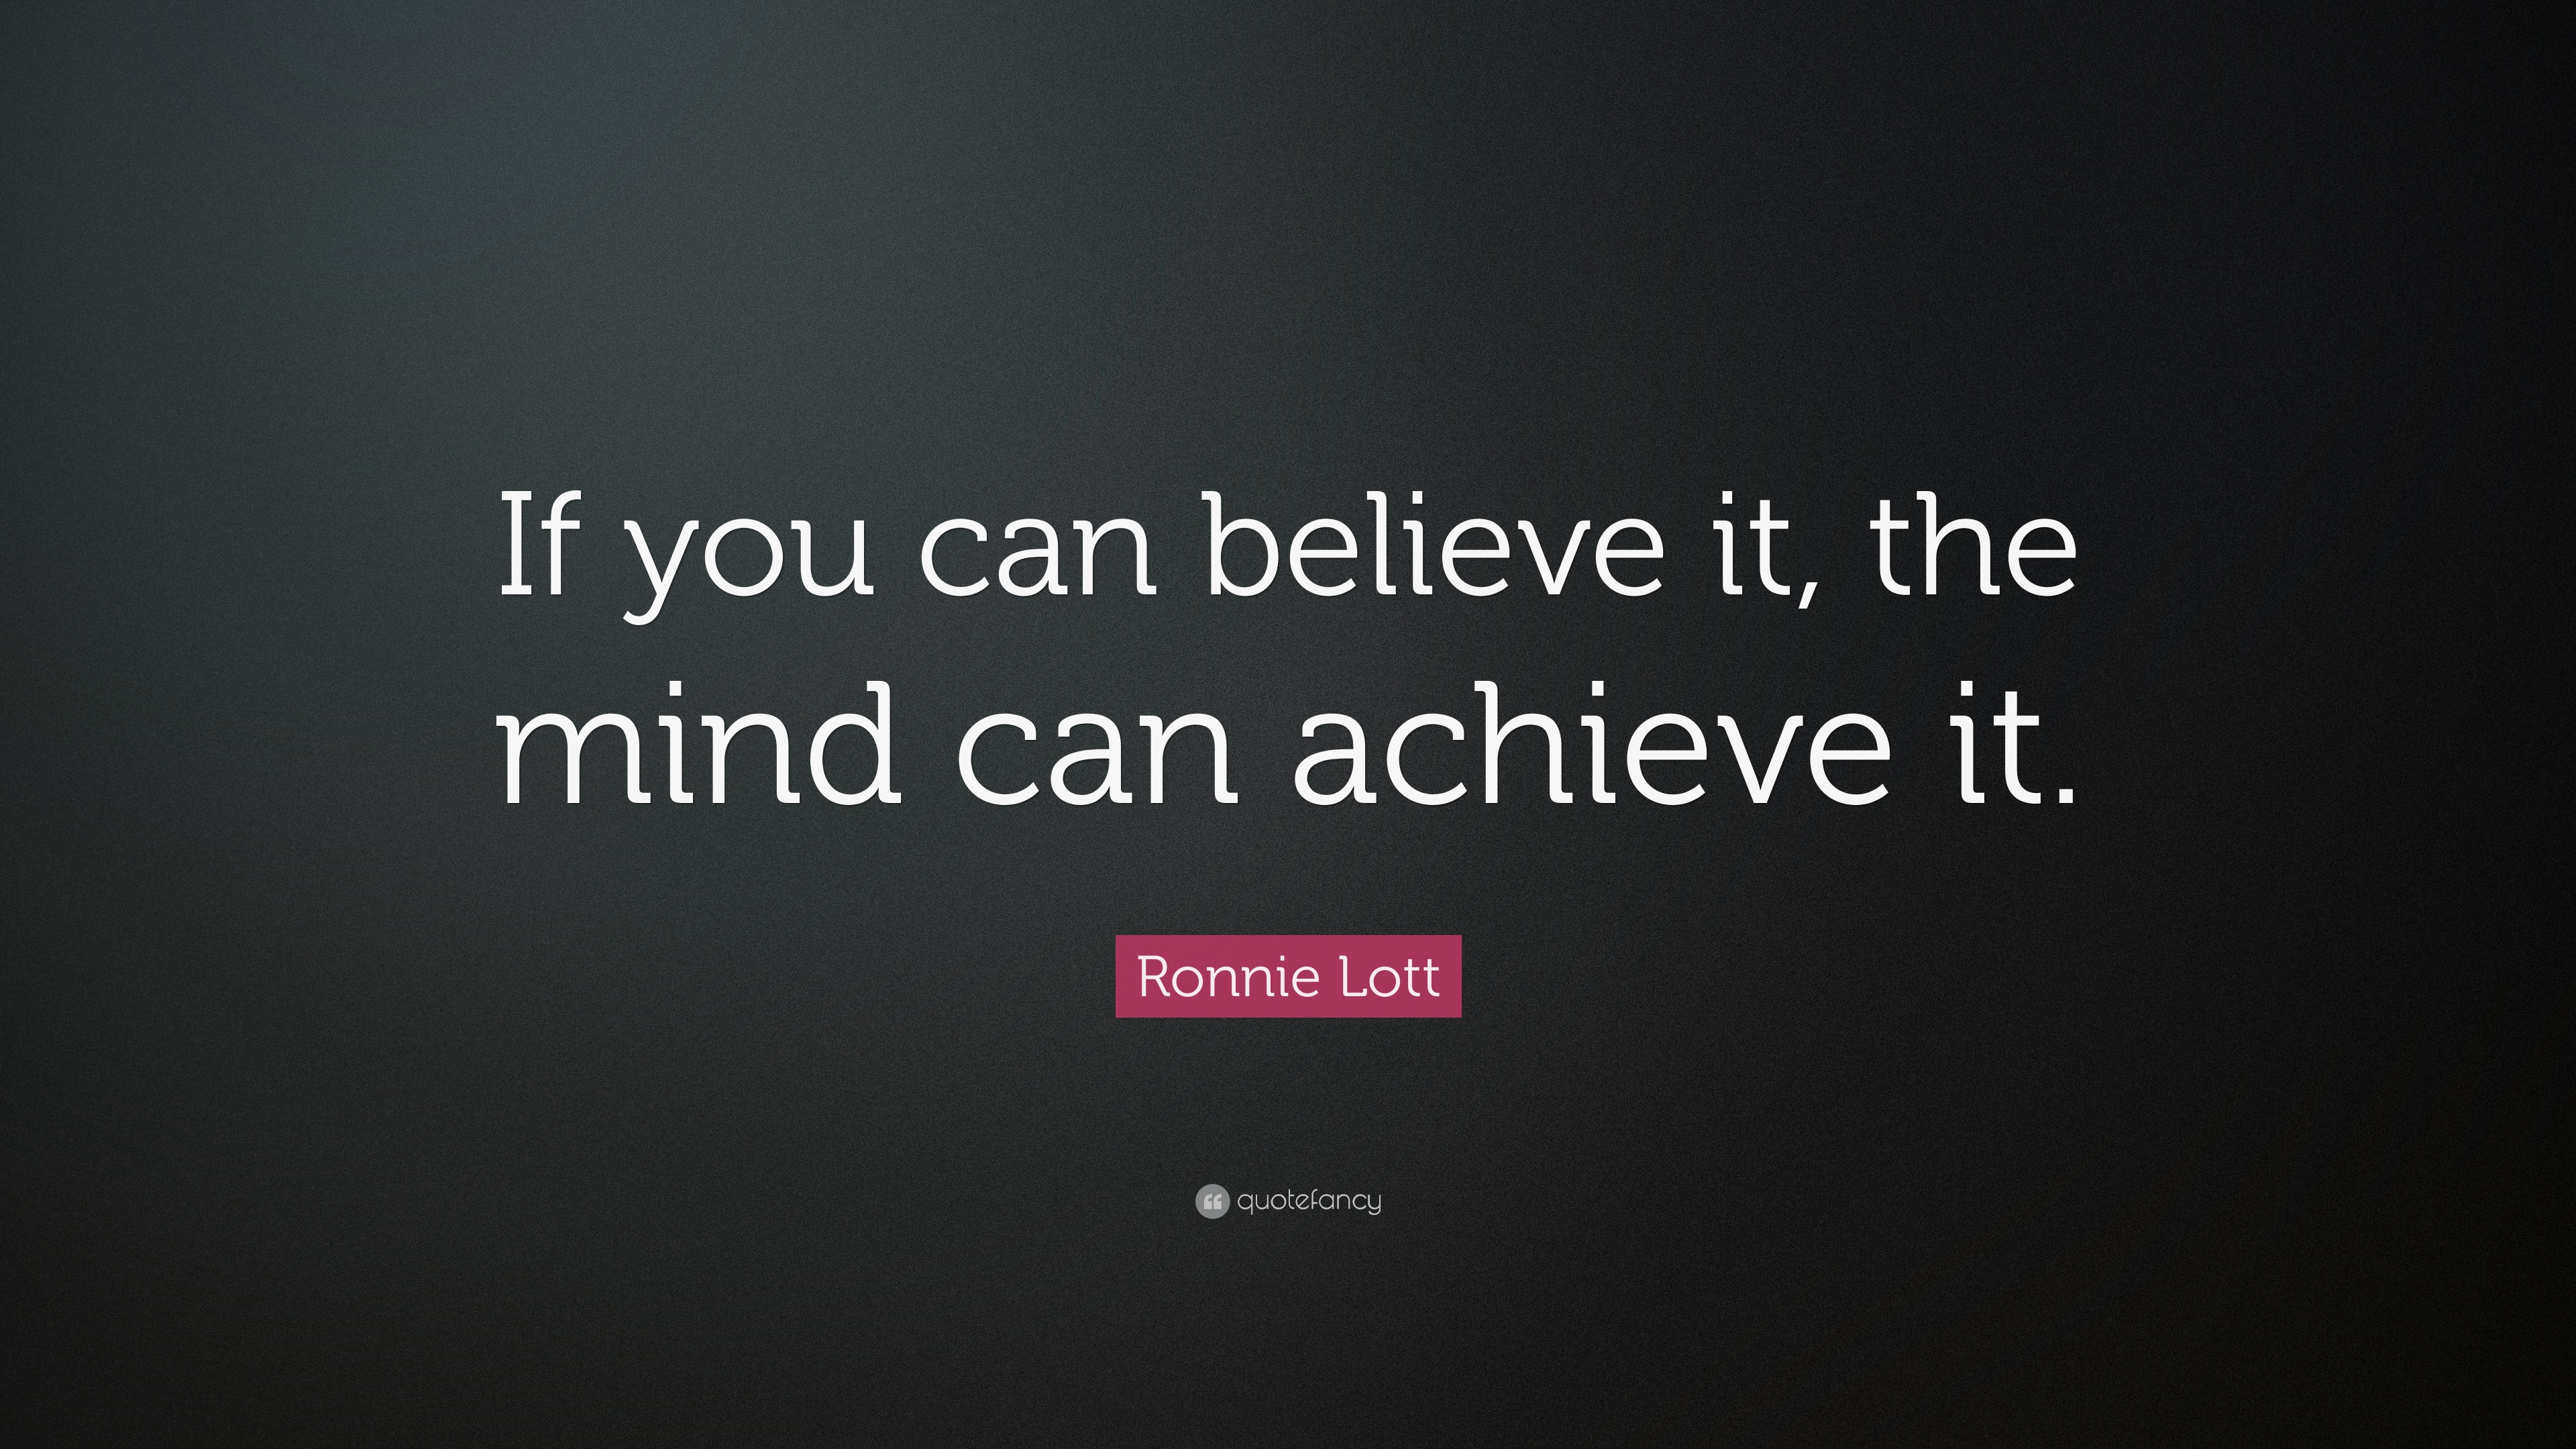 Incroyable Ronnie Lott Quote: U201cIf You Can Believe It, The Mind Can Achieve It